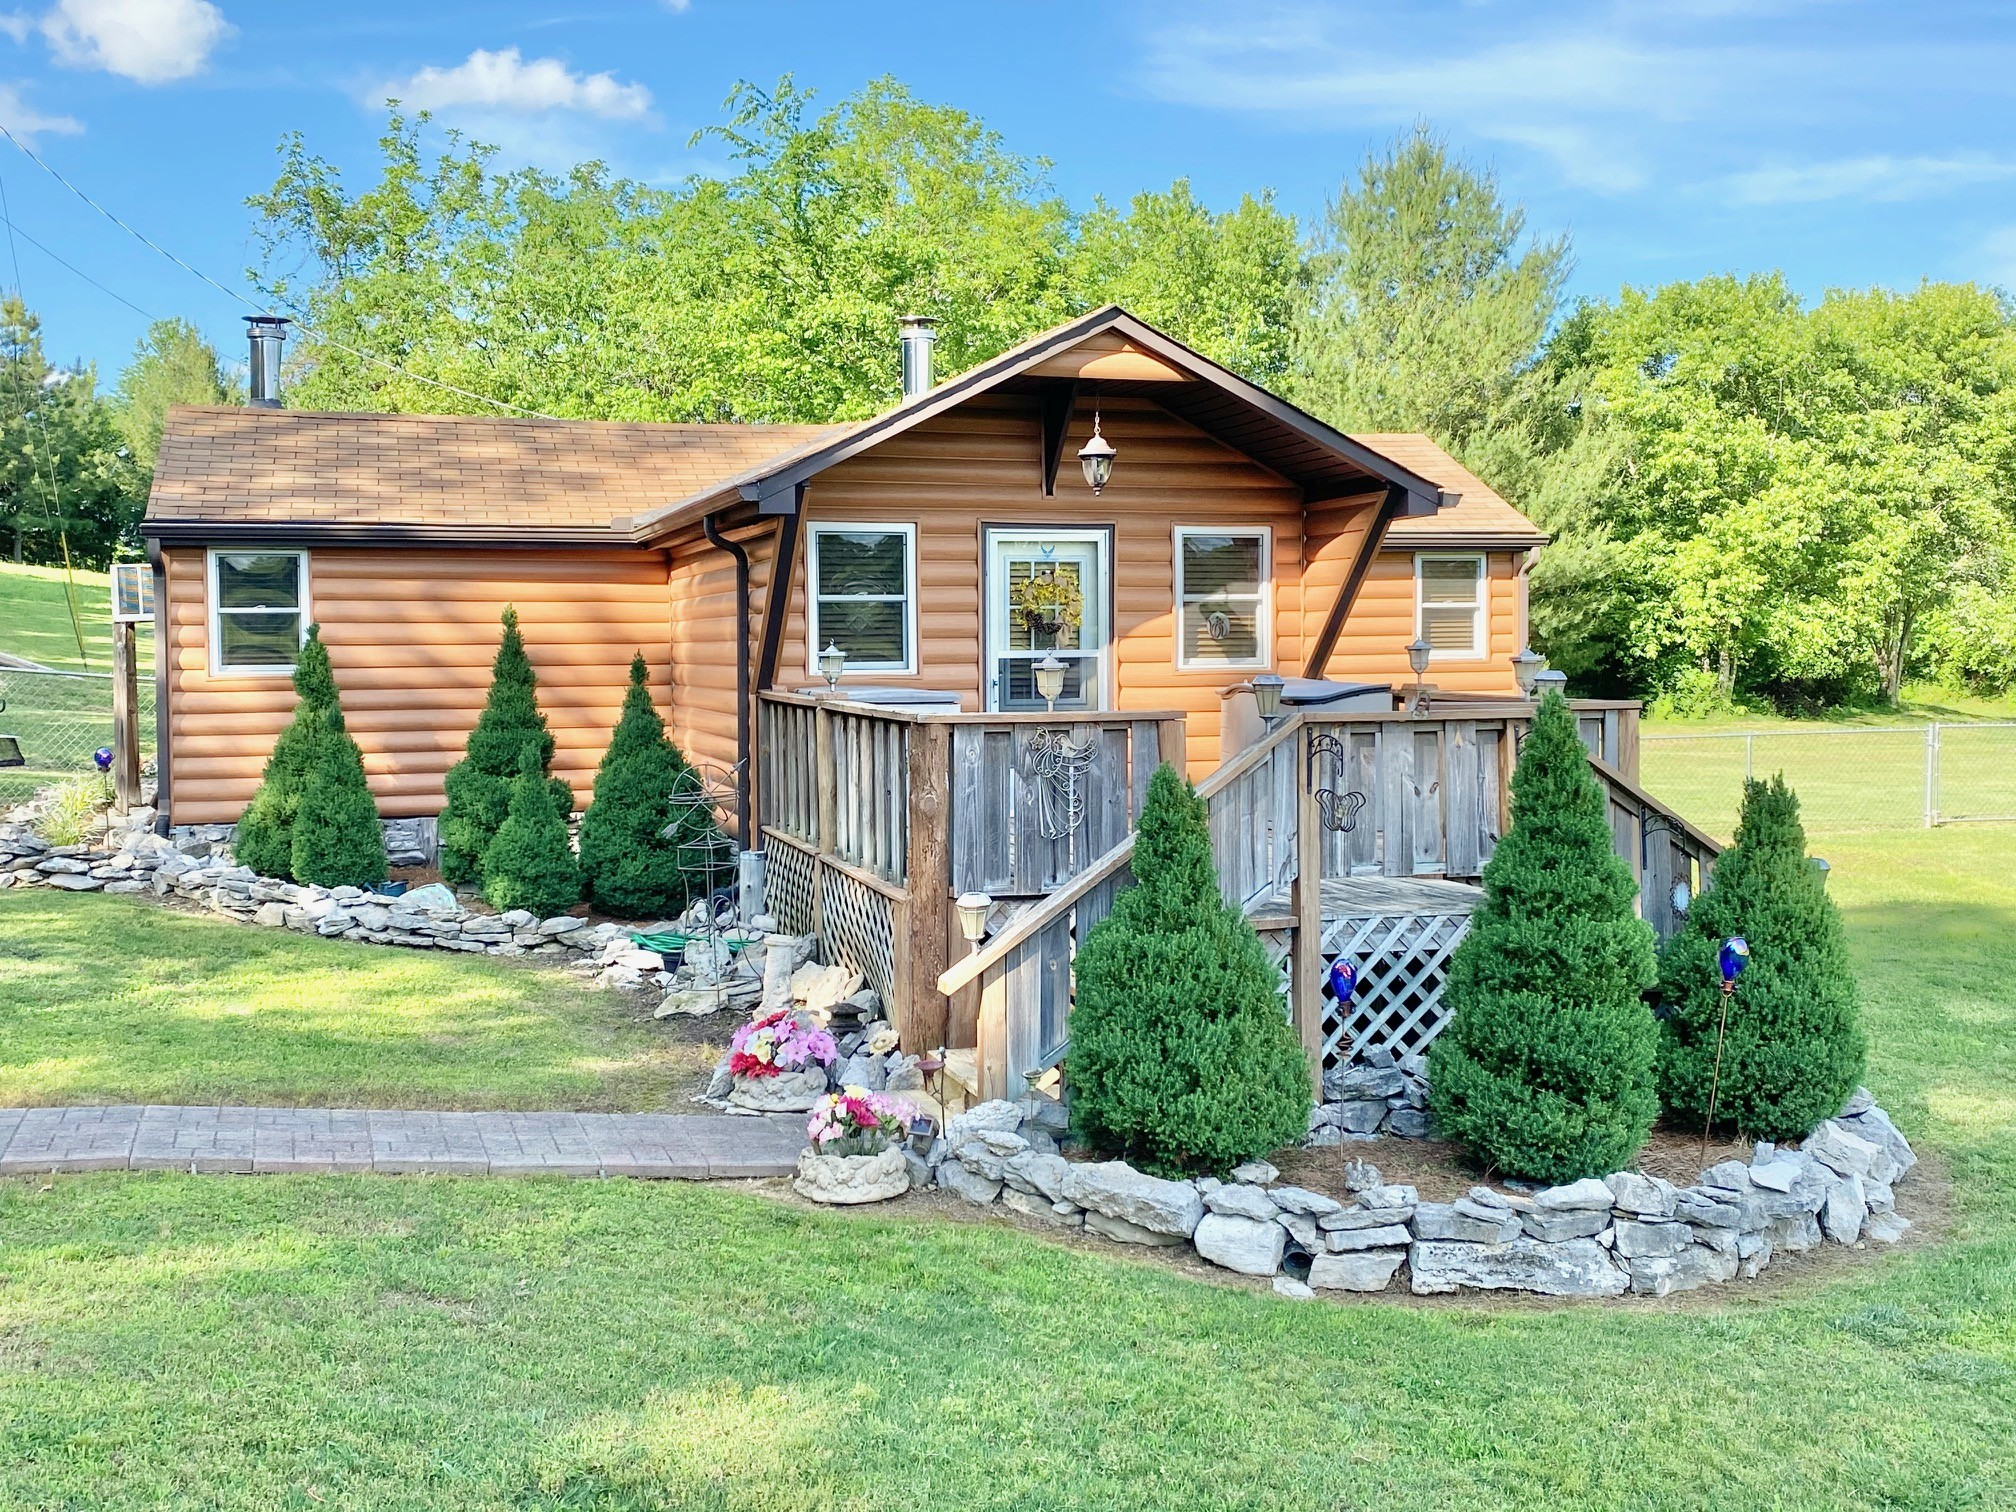 109 S Smith Hollow Ln Property Photo - Brush Creek, TN real estate listing